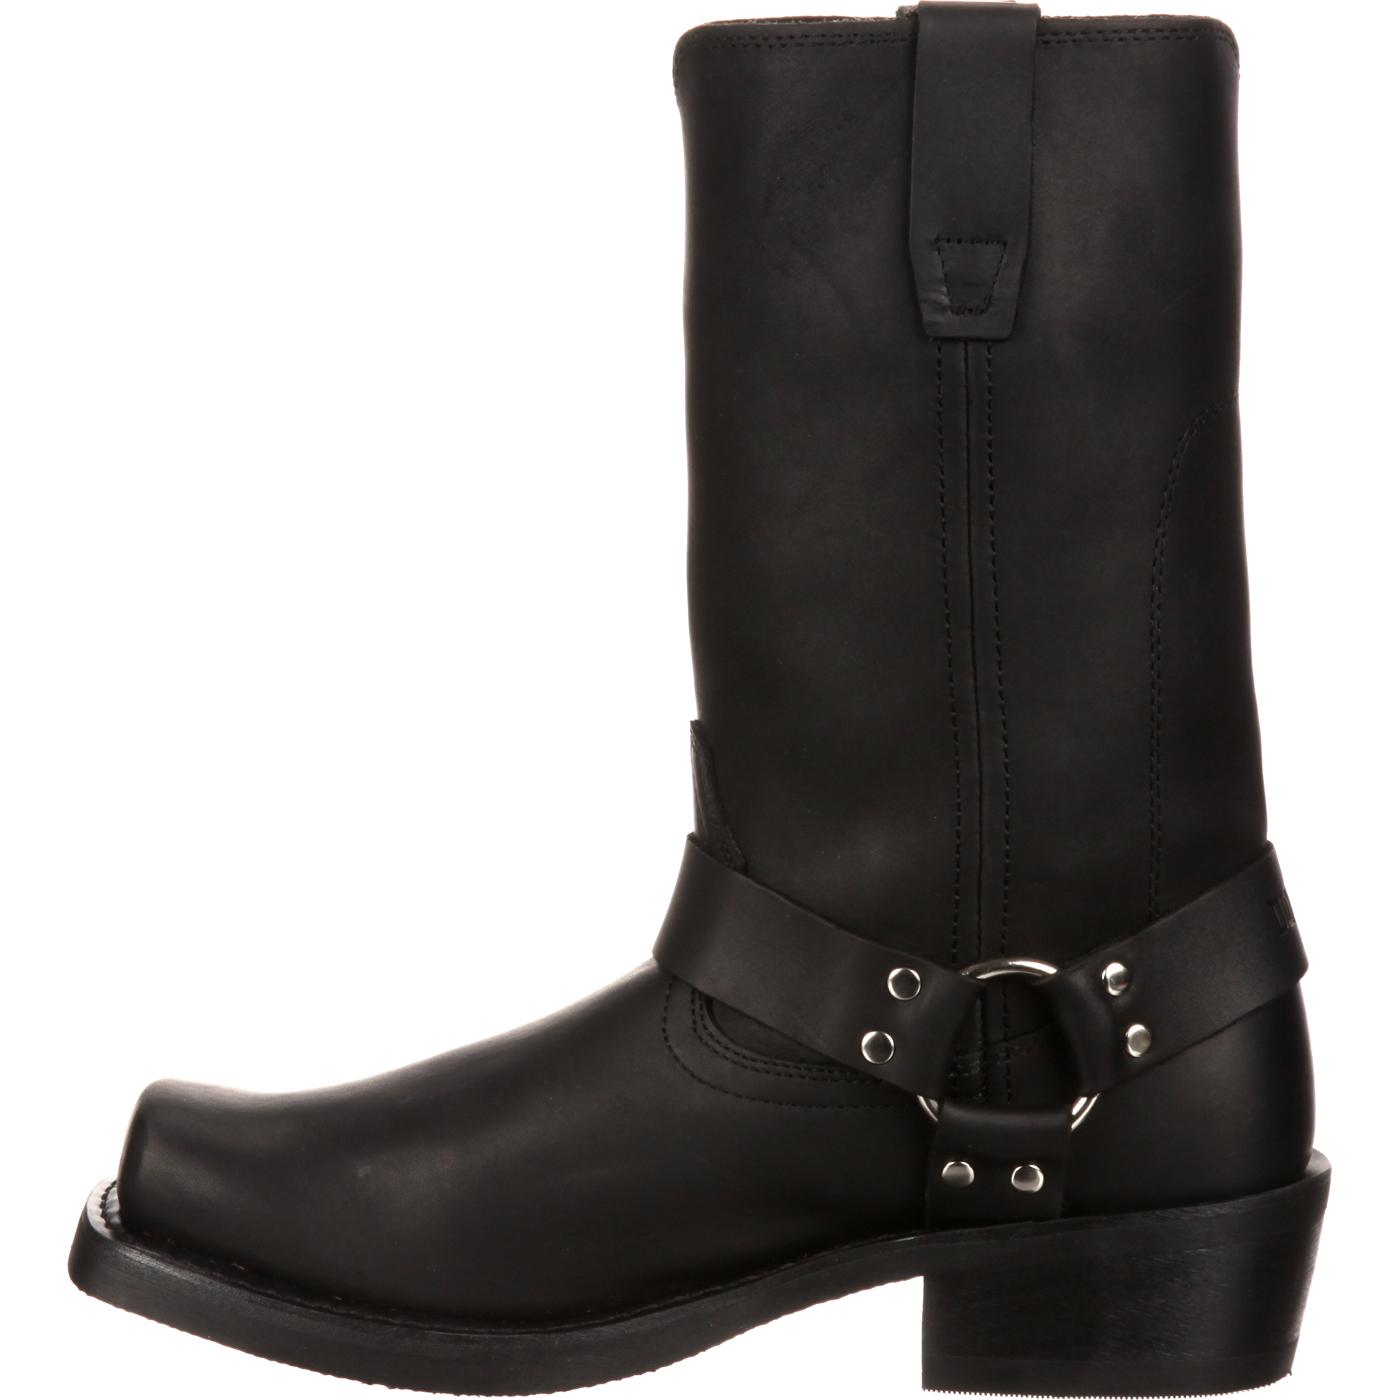 b1e8130d14d Durango Black Harness Boot